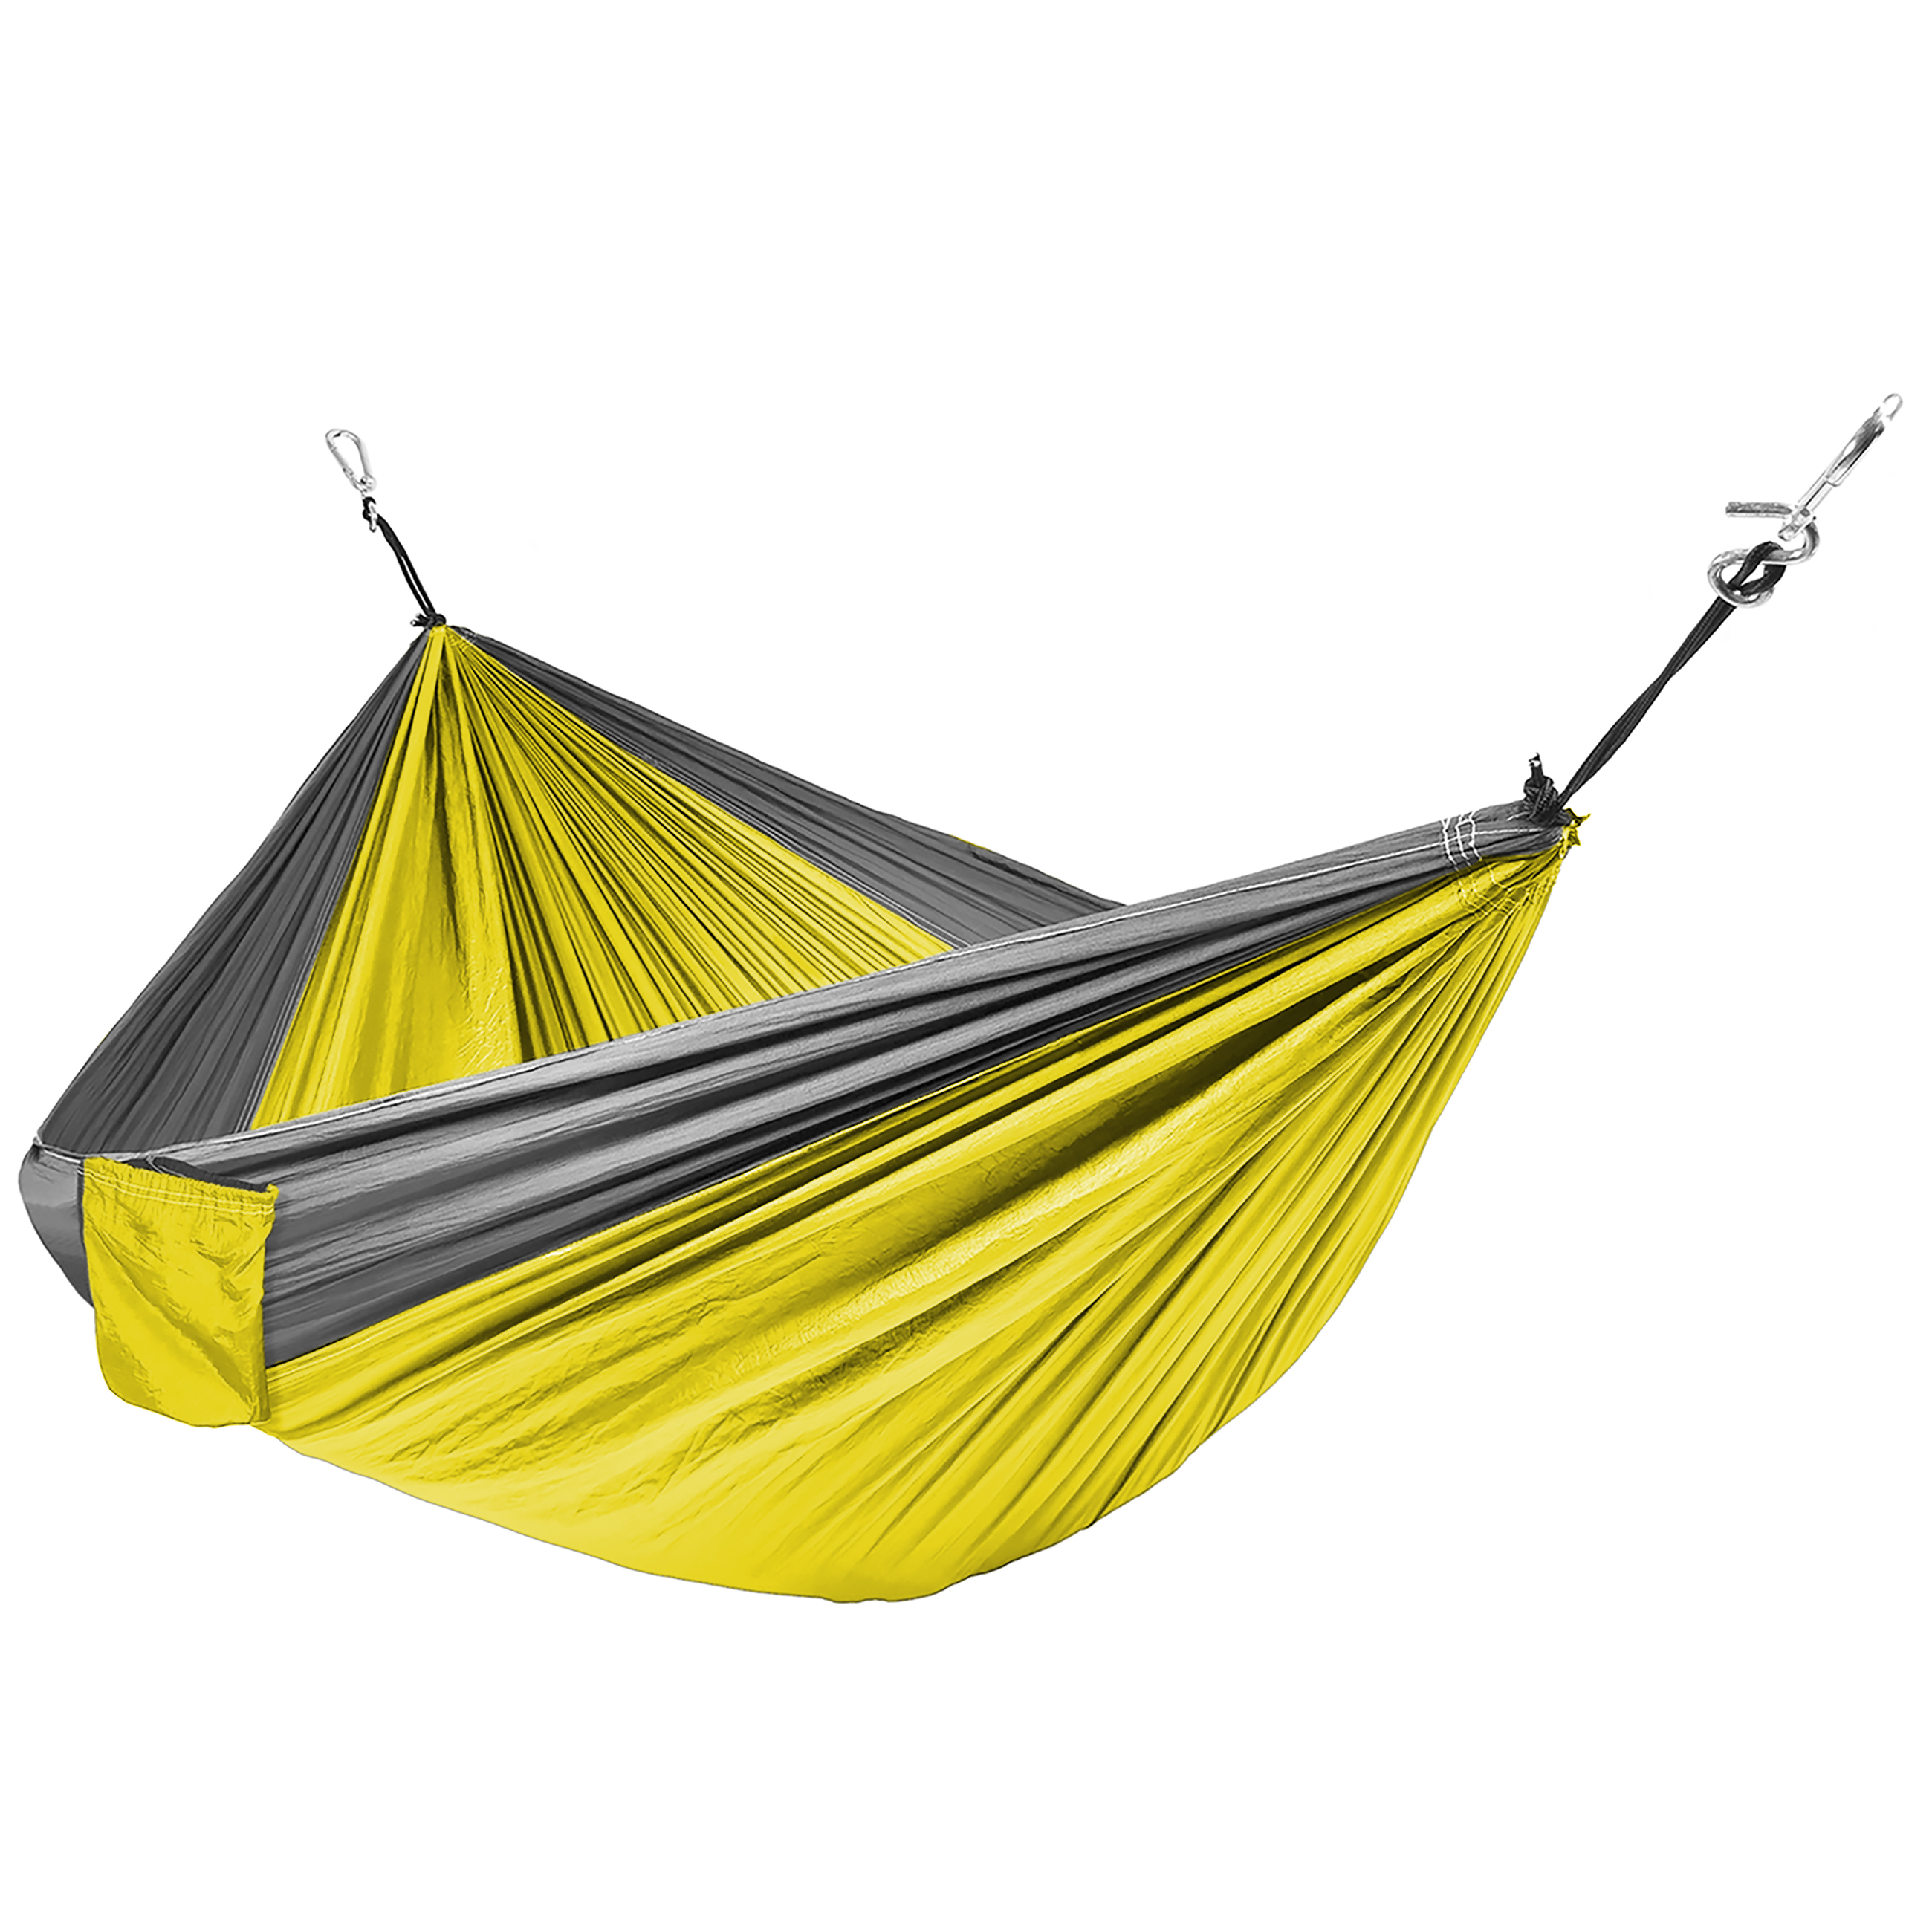 Best Choice Products Portable Parachute Hammock Nylon Hanging Outdoor Camping Patio Yellow by